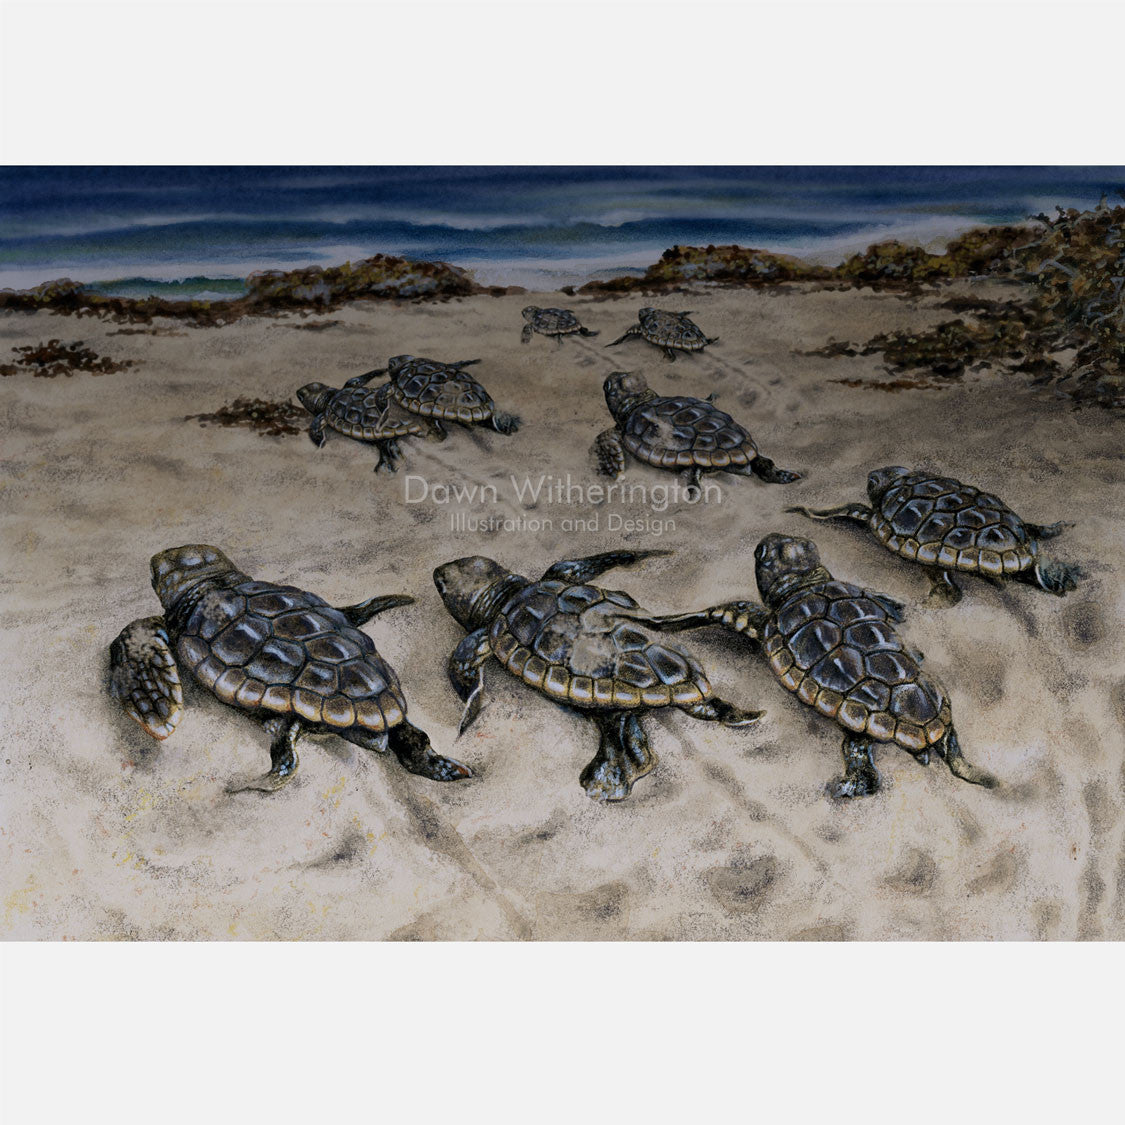 This beautiful illustration is of loggerhead sea turtle hatchlings (Caretta caretta) scurrying to the sea after emerging from their nest.